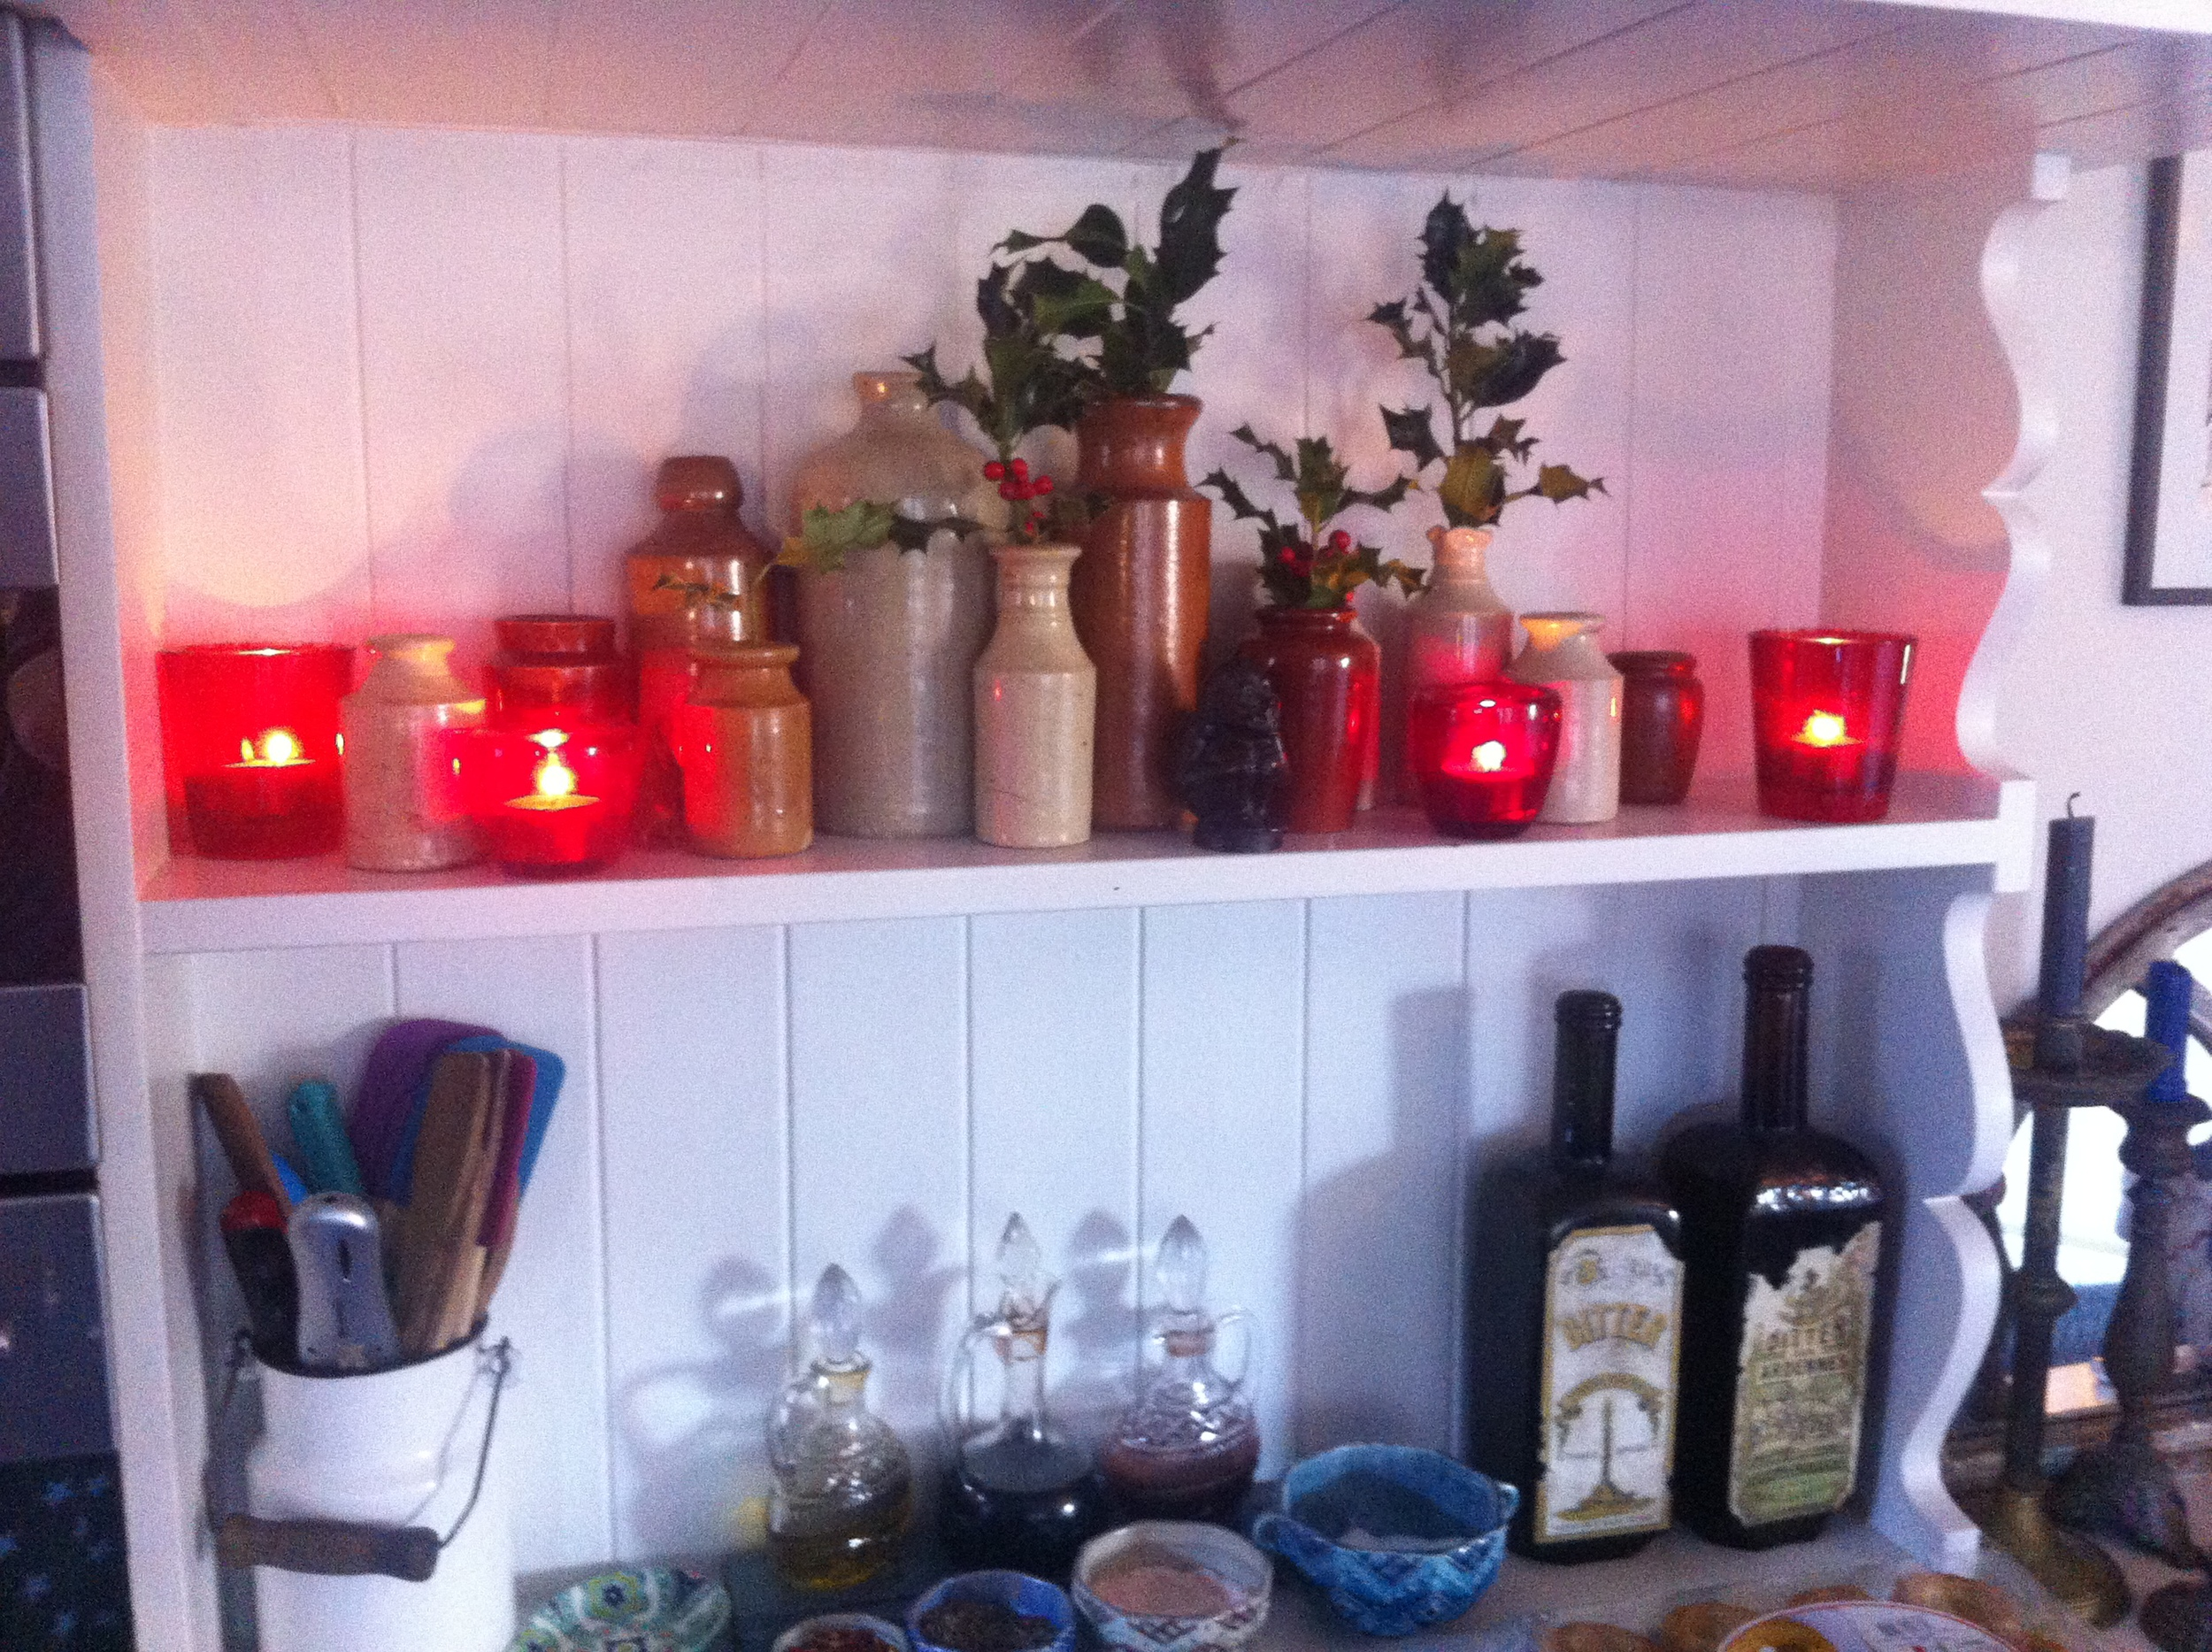 Tiny sprigs of holly in vintage bottles lit by a few candles